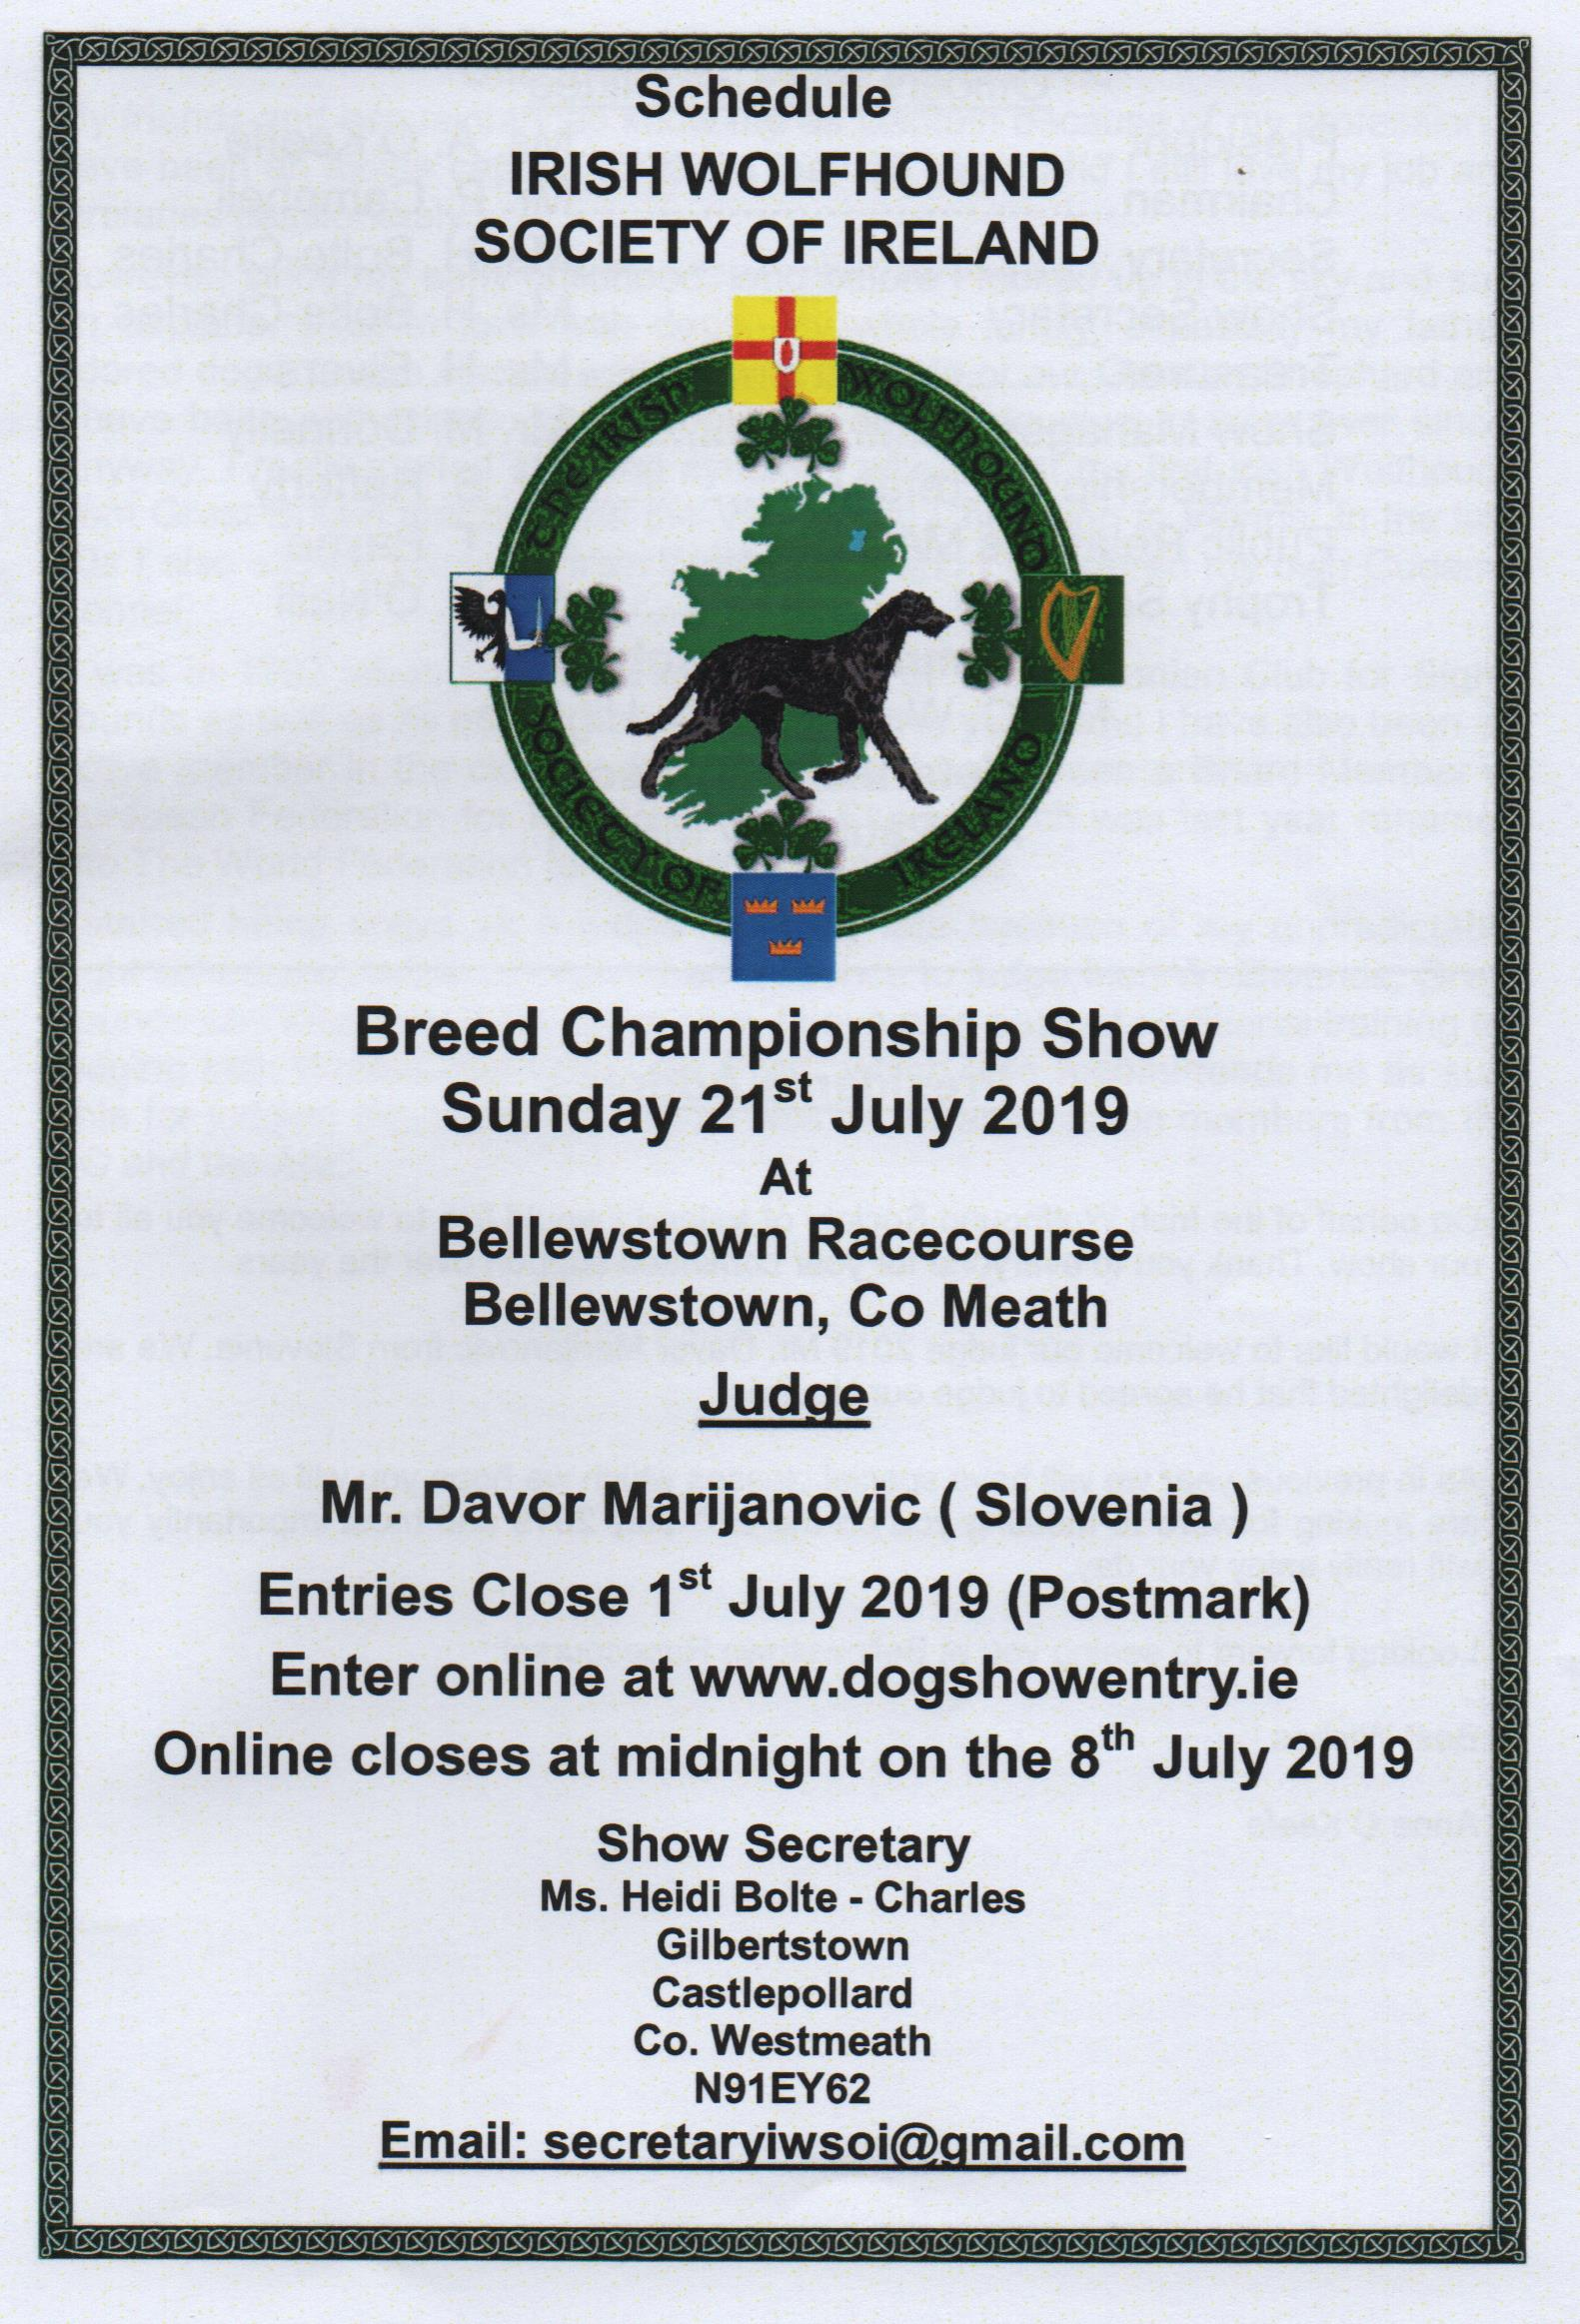 2019 Irish Wolfhound Annual Breed Show